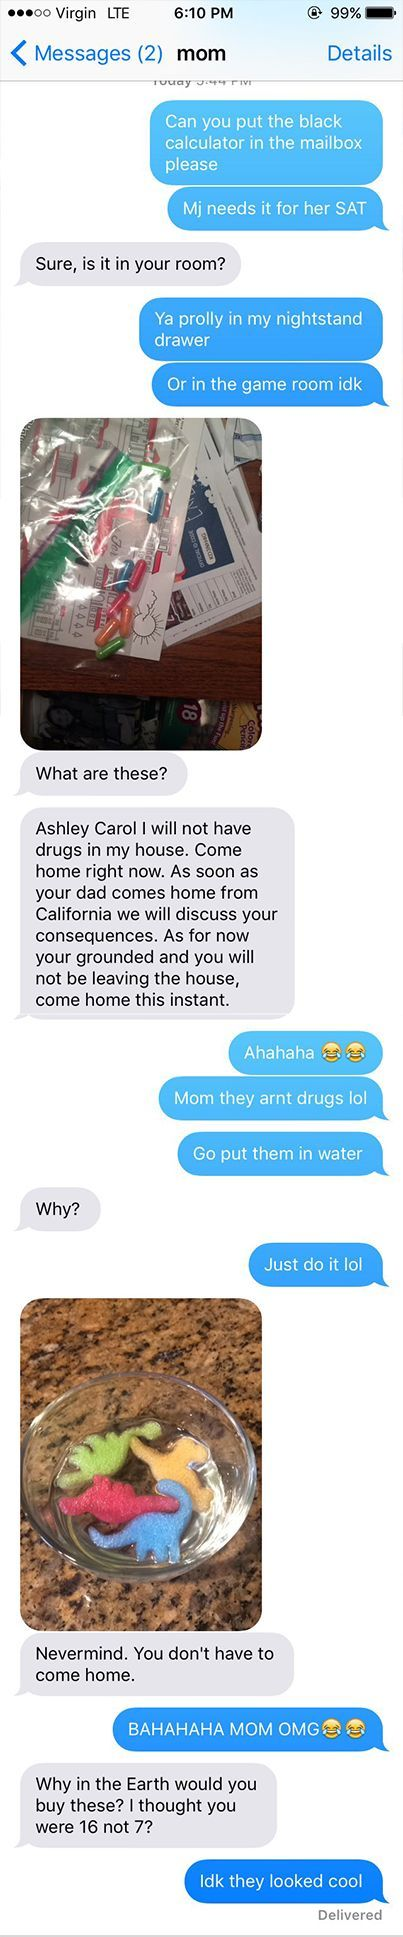 Mom thinks she found drugs in teen's